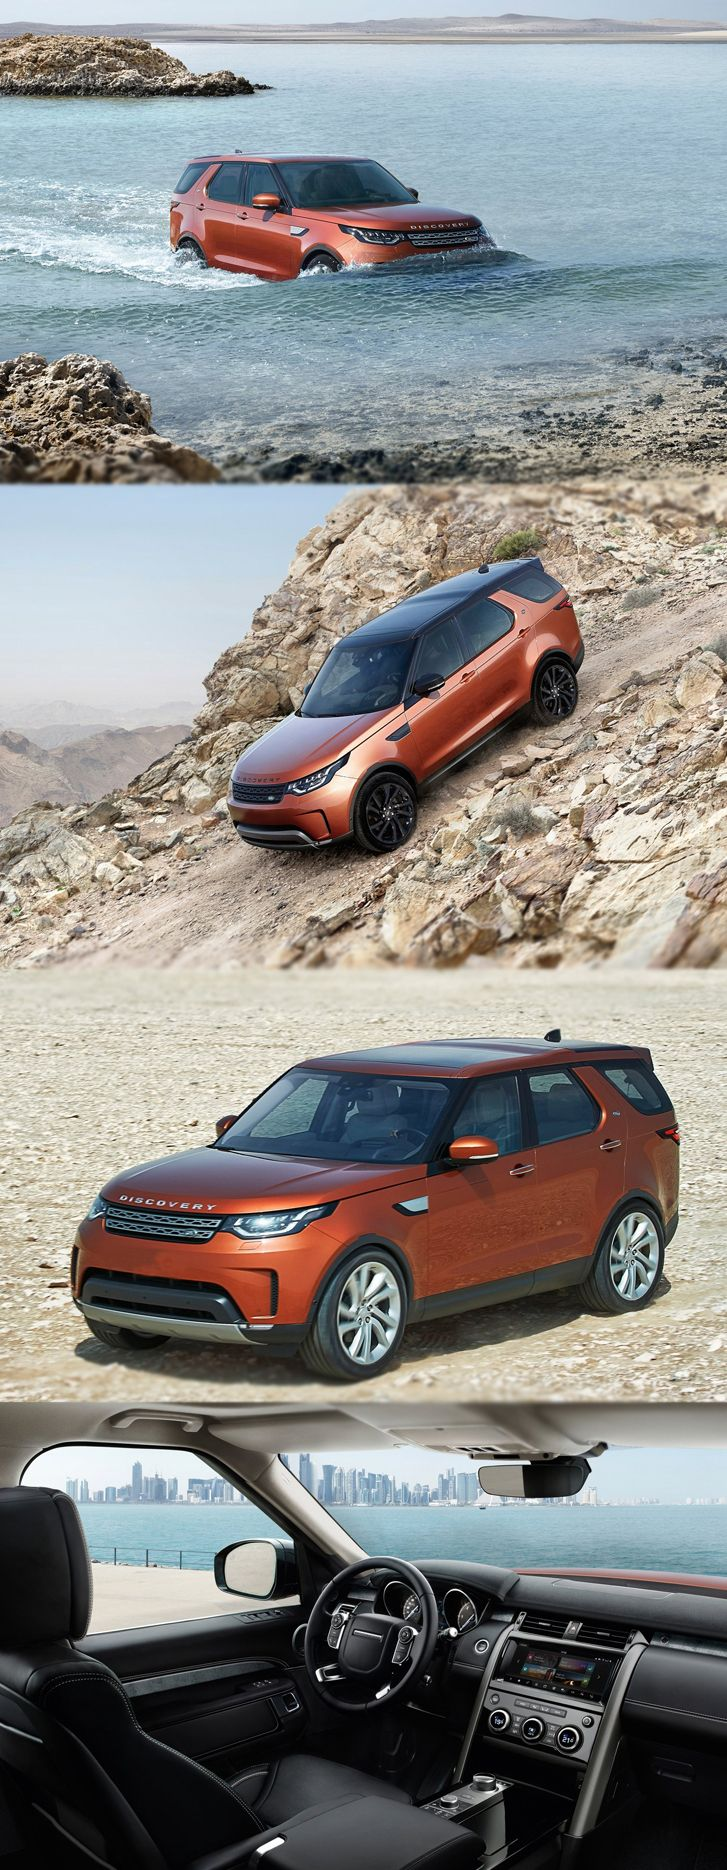 USE LAND ROVER DISCOVERY TO RETRIEVE SHEEP'S BY NEXT YEAR For more detail:https://www.rangerovergearbox.co.uk/blog/use-land-rover-discovery-retrieve-sheeps-next-year/